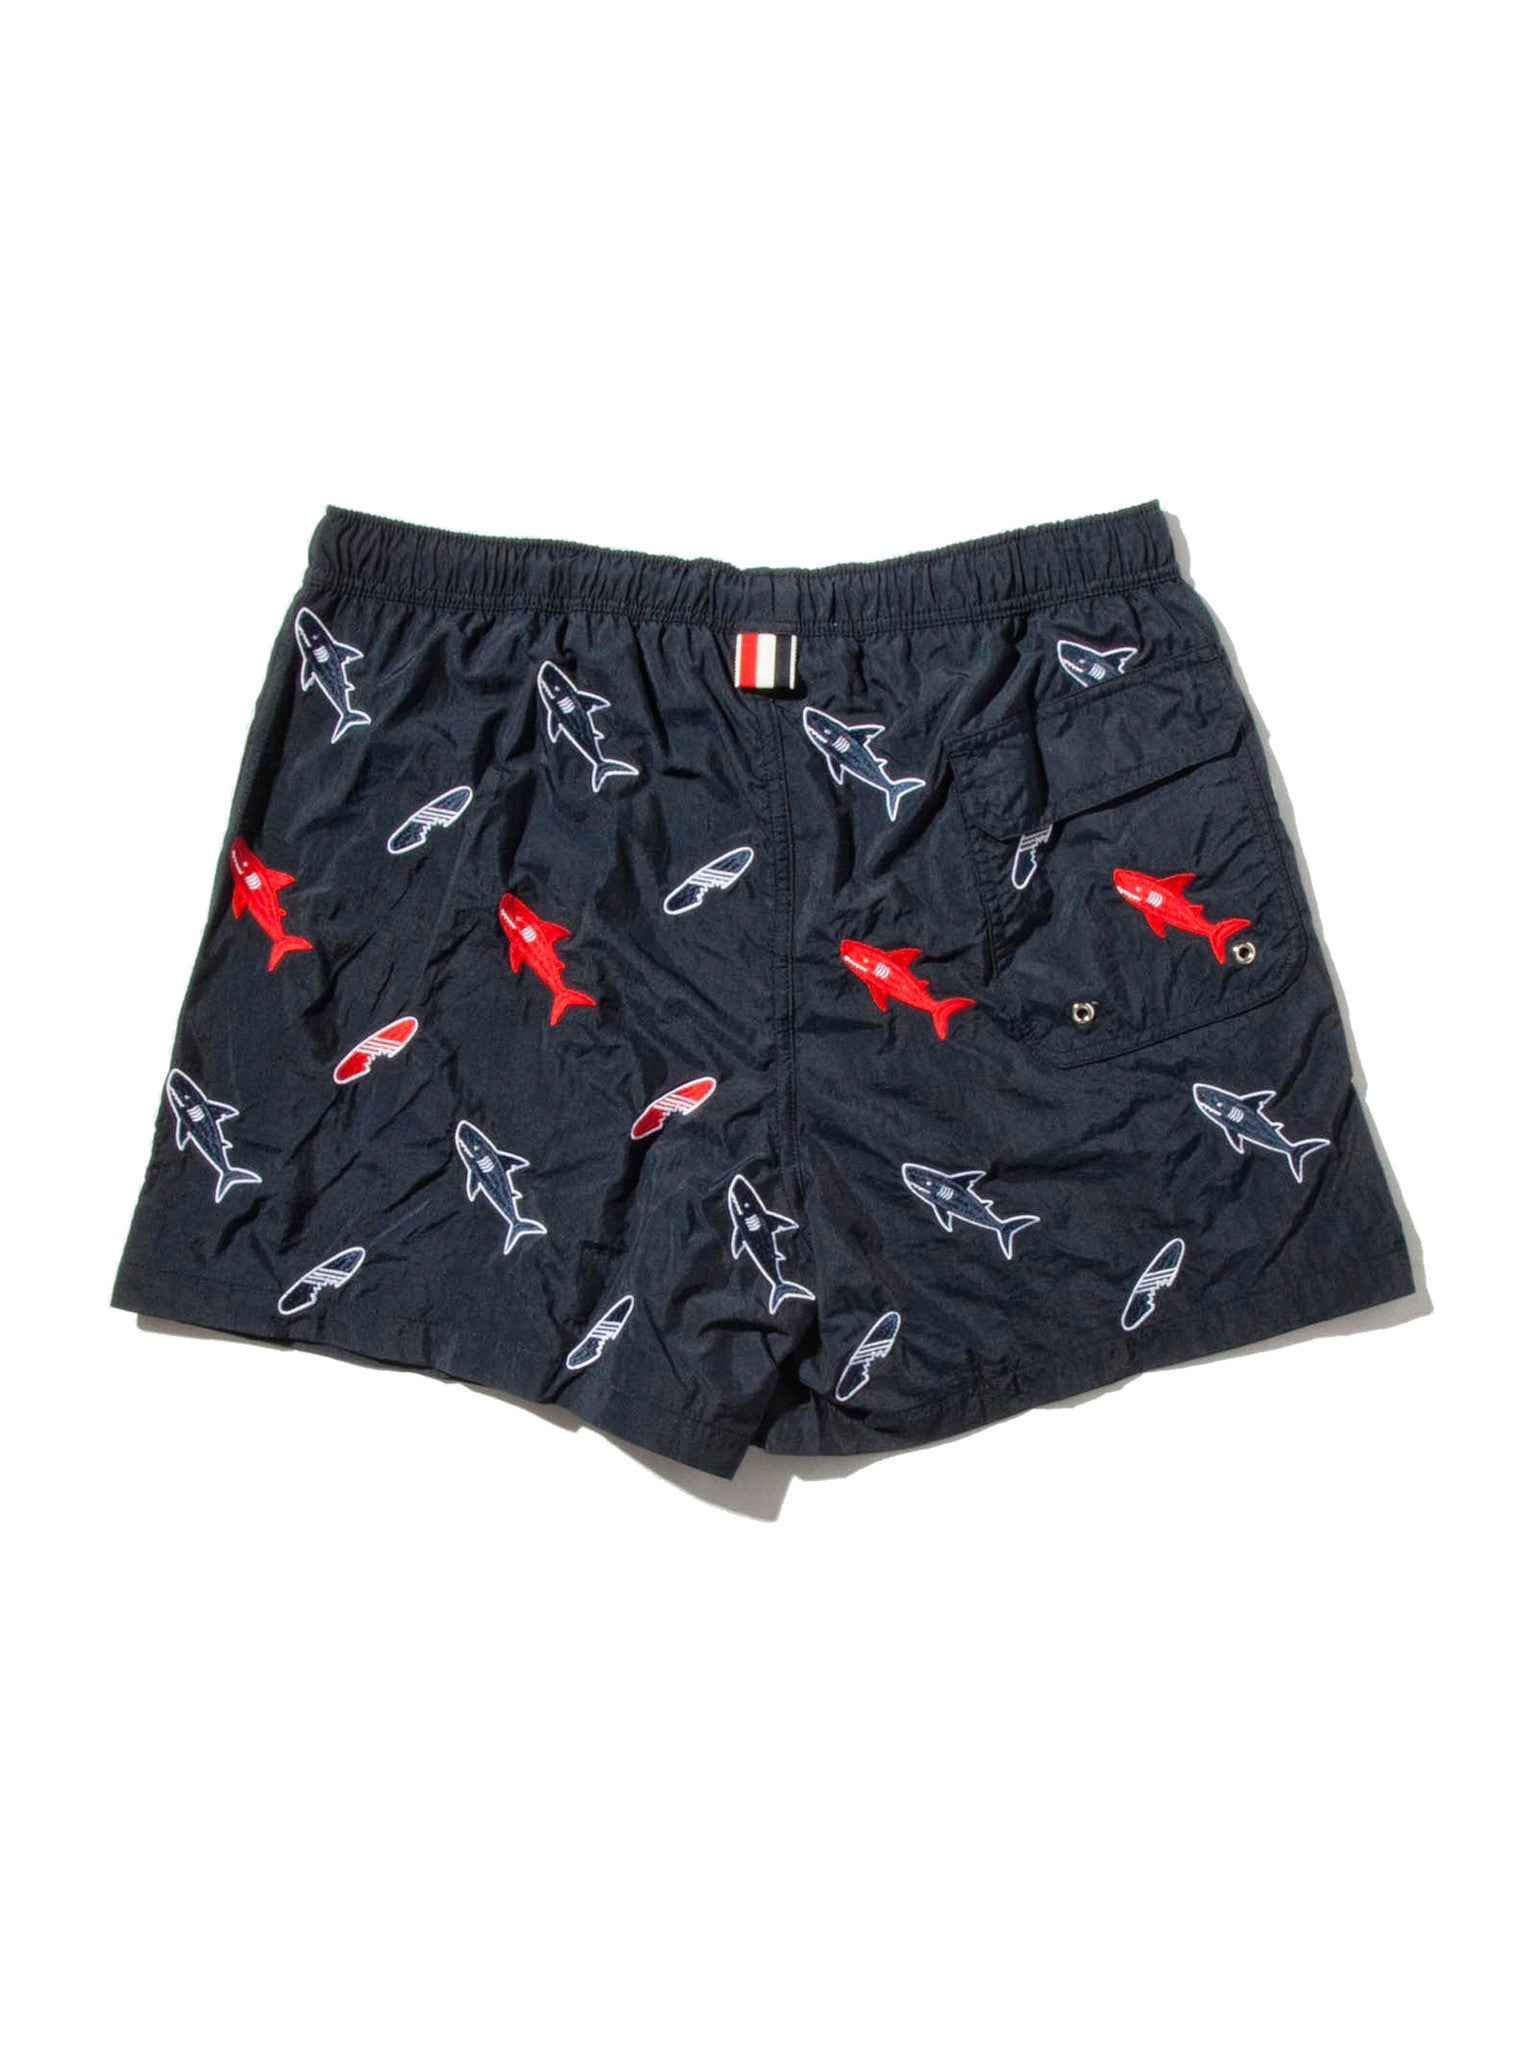 Classic Swim Trunk (Shark & Surfboard Embroidery)